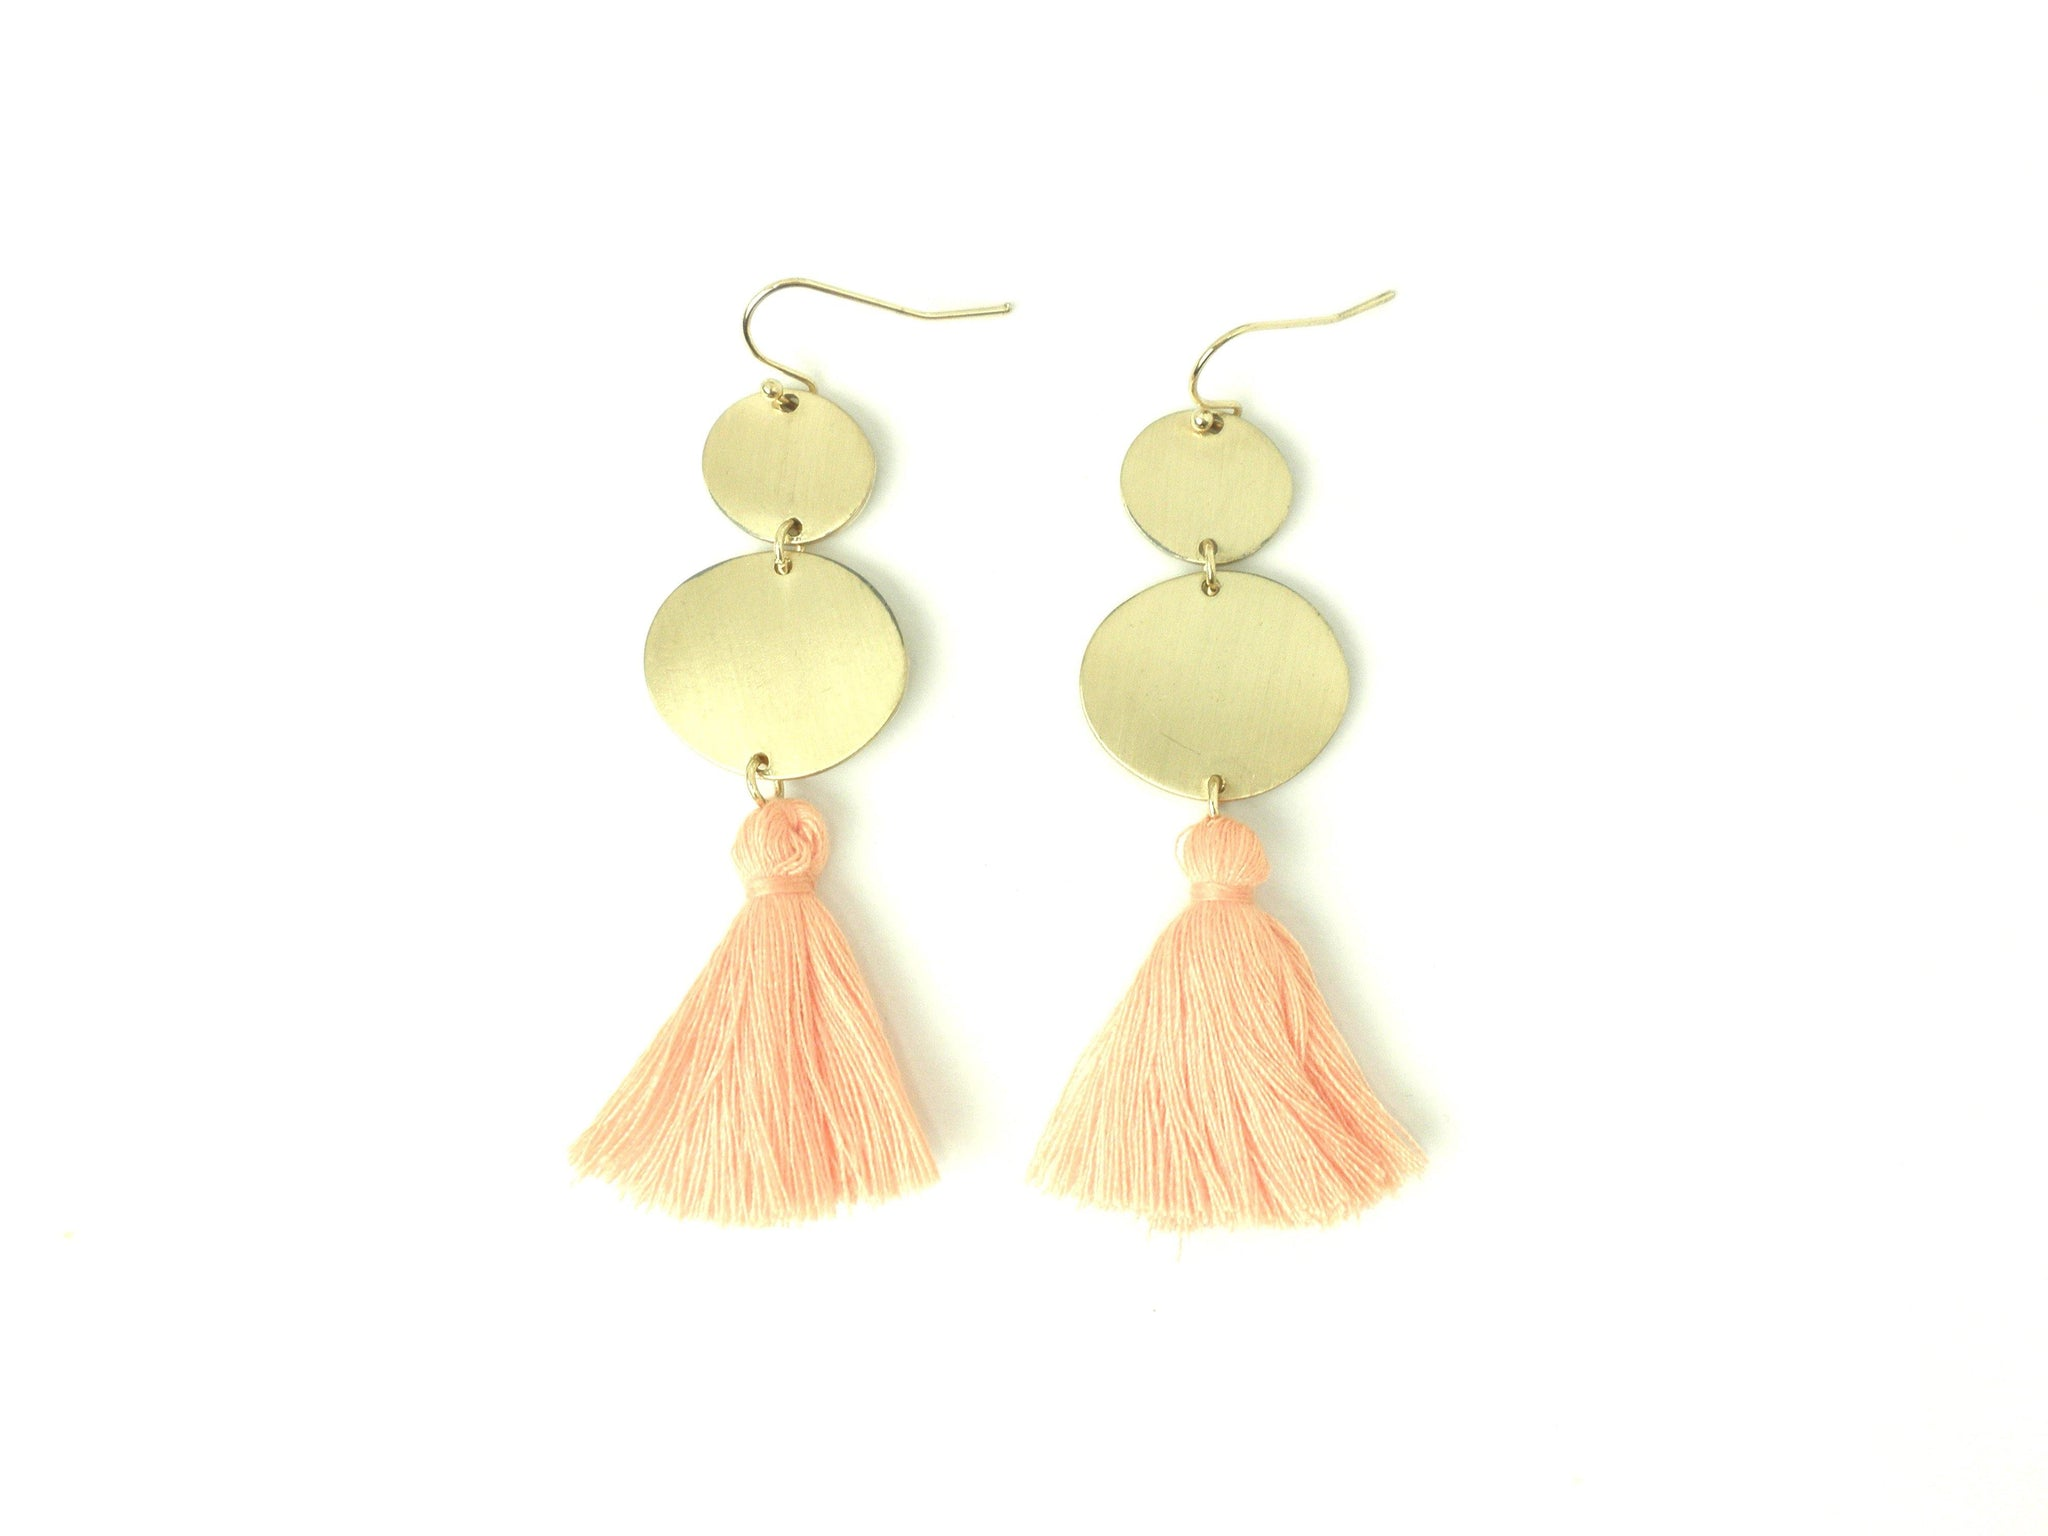 Gold Dangling Earrings with Pink Tassels